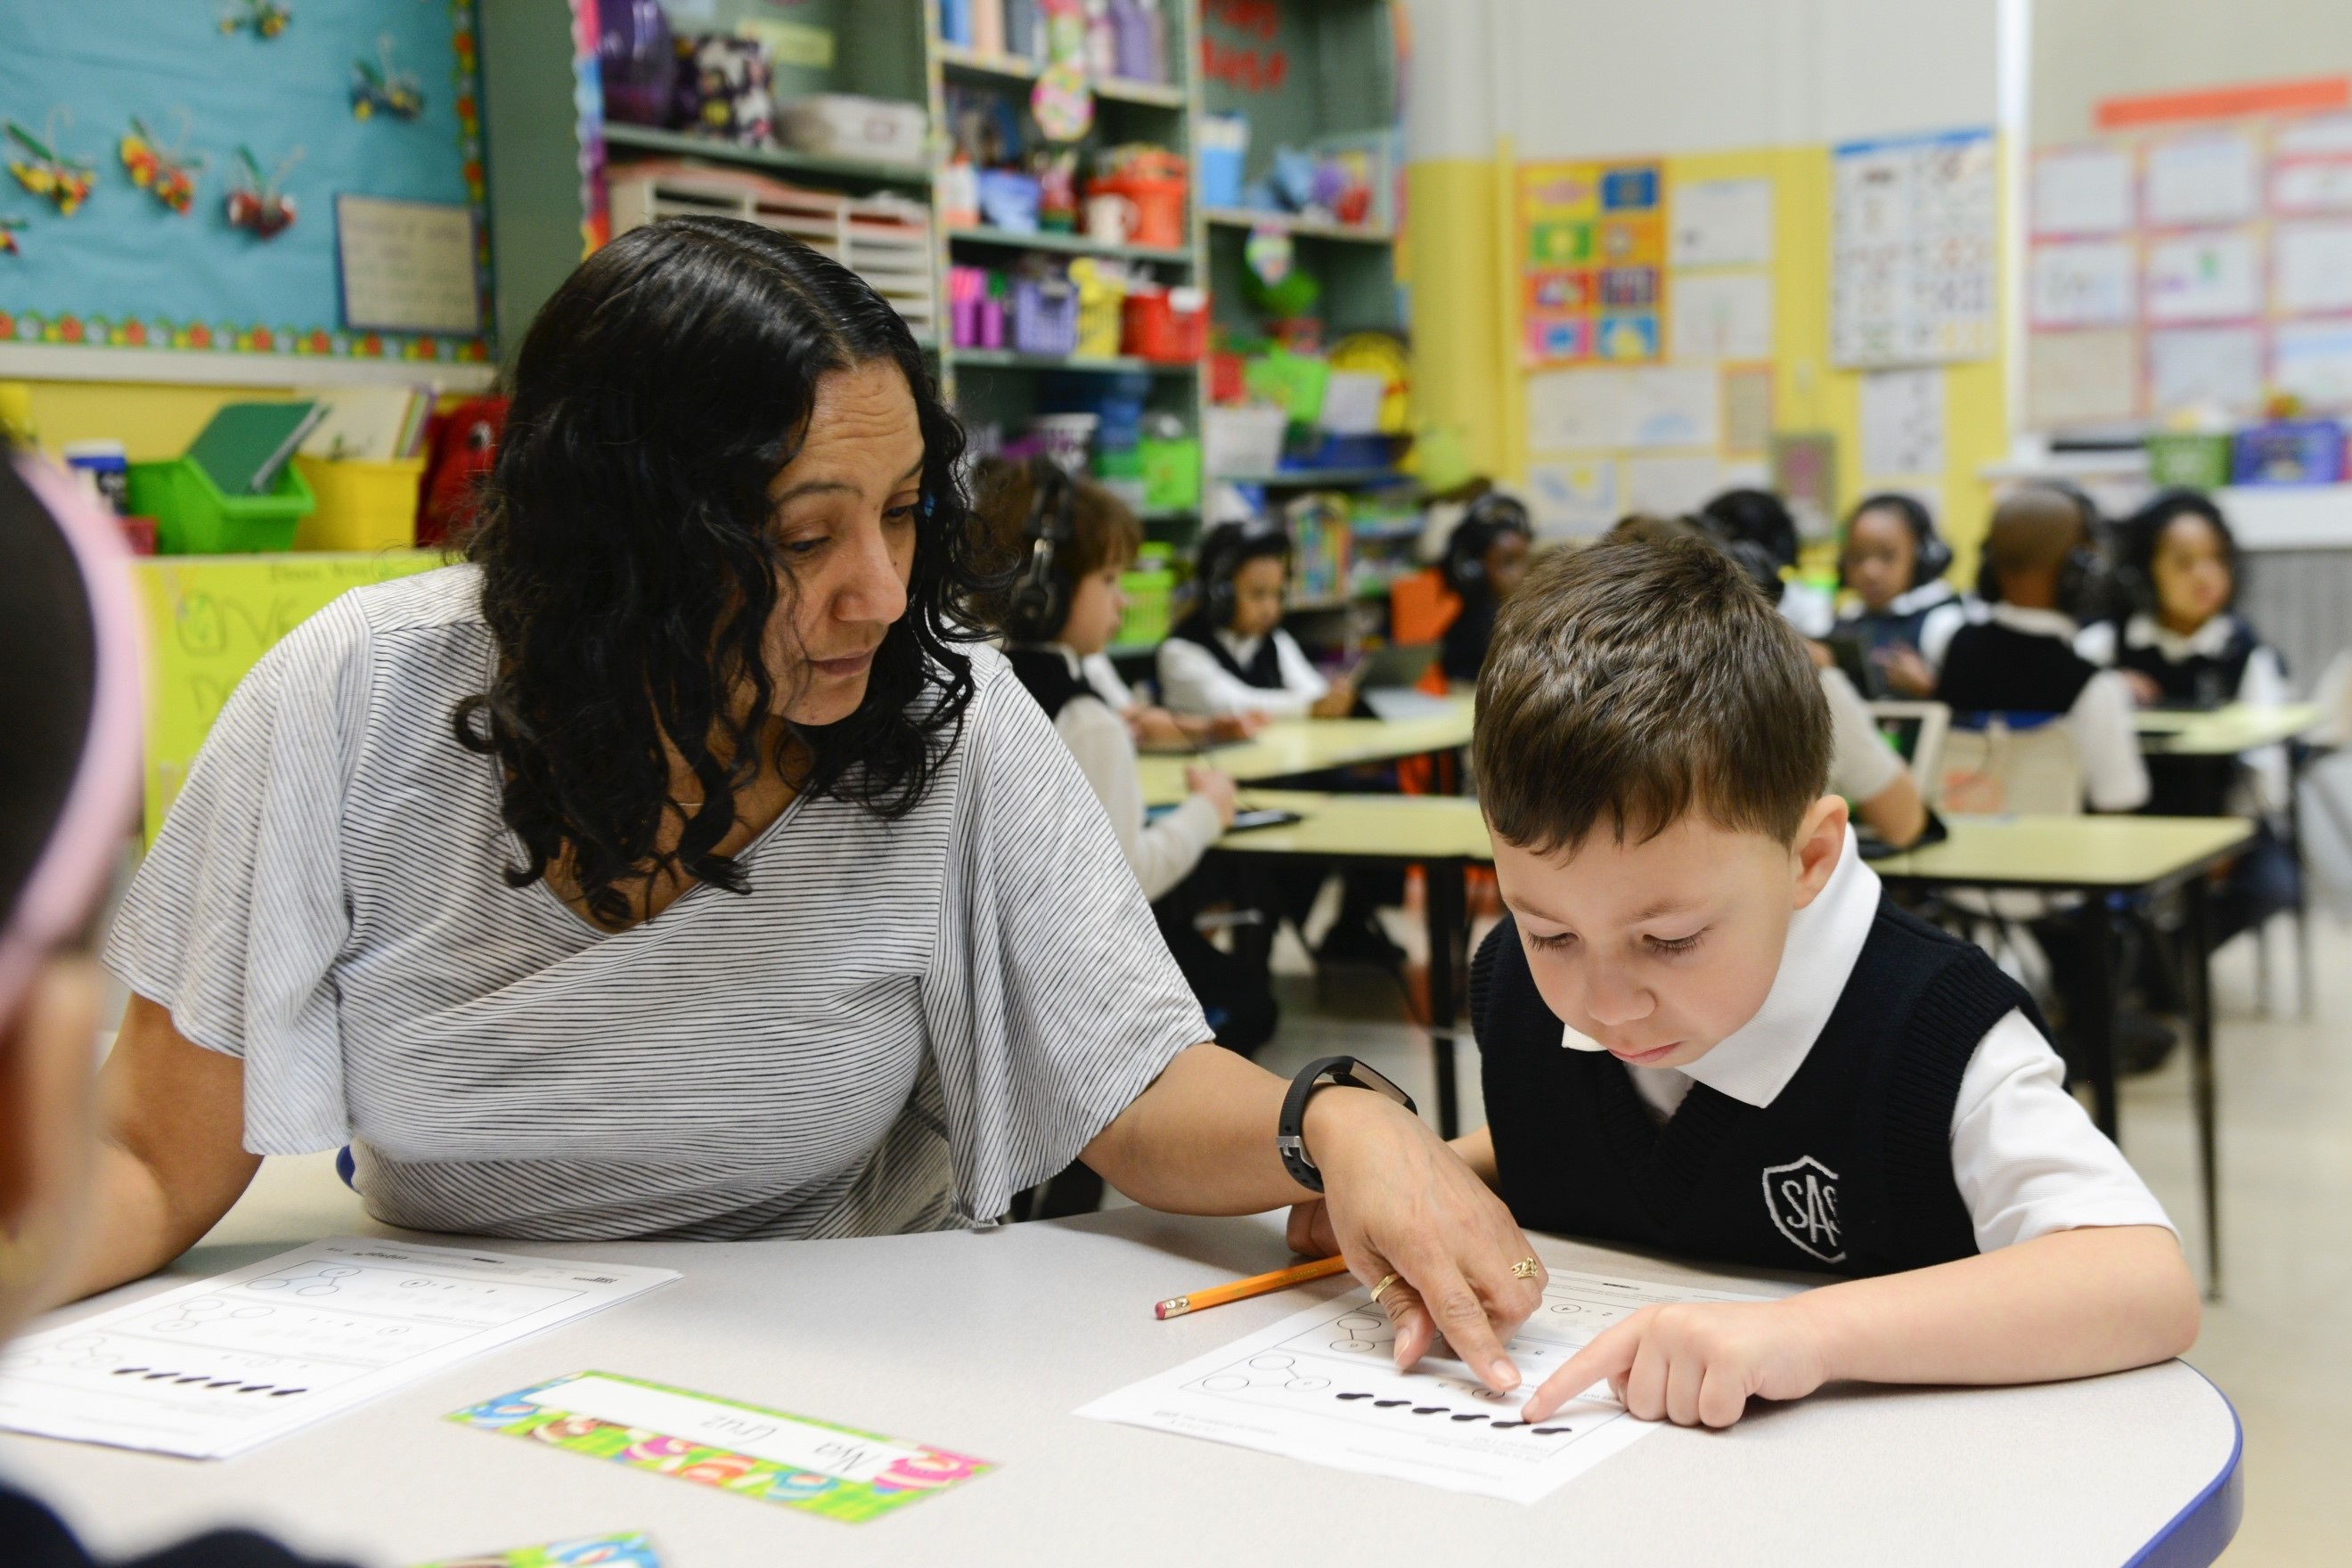 Direct instruction between student and teacher